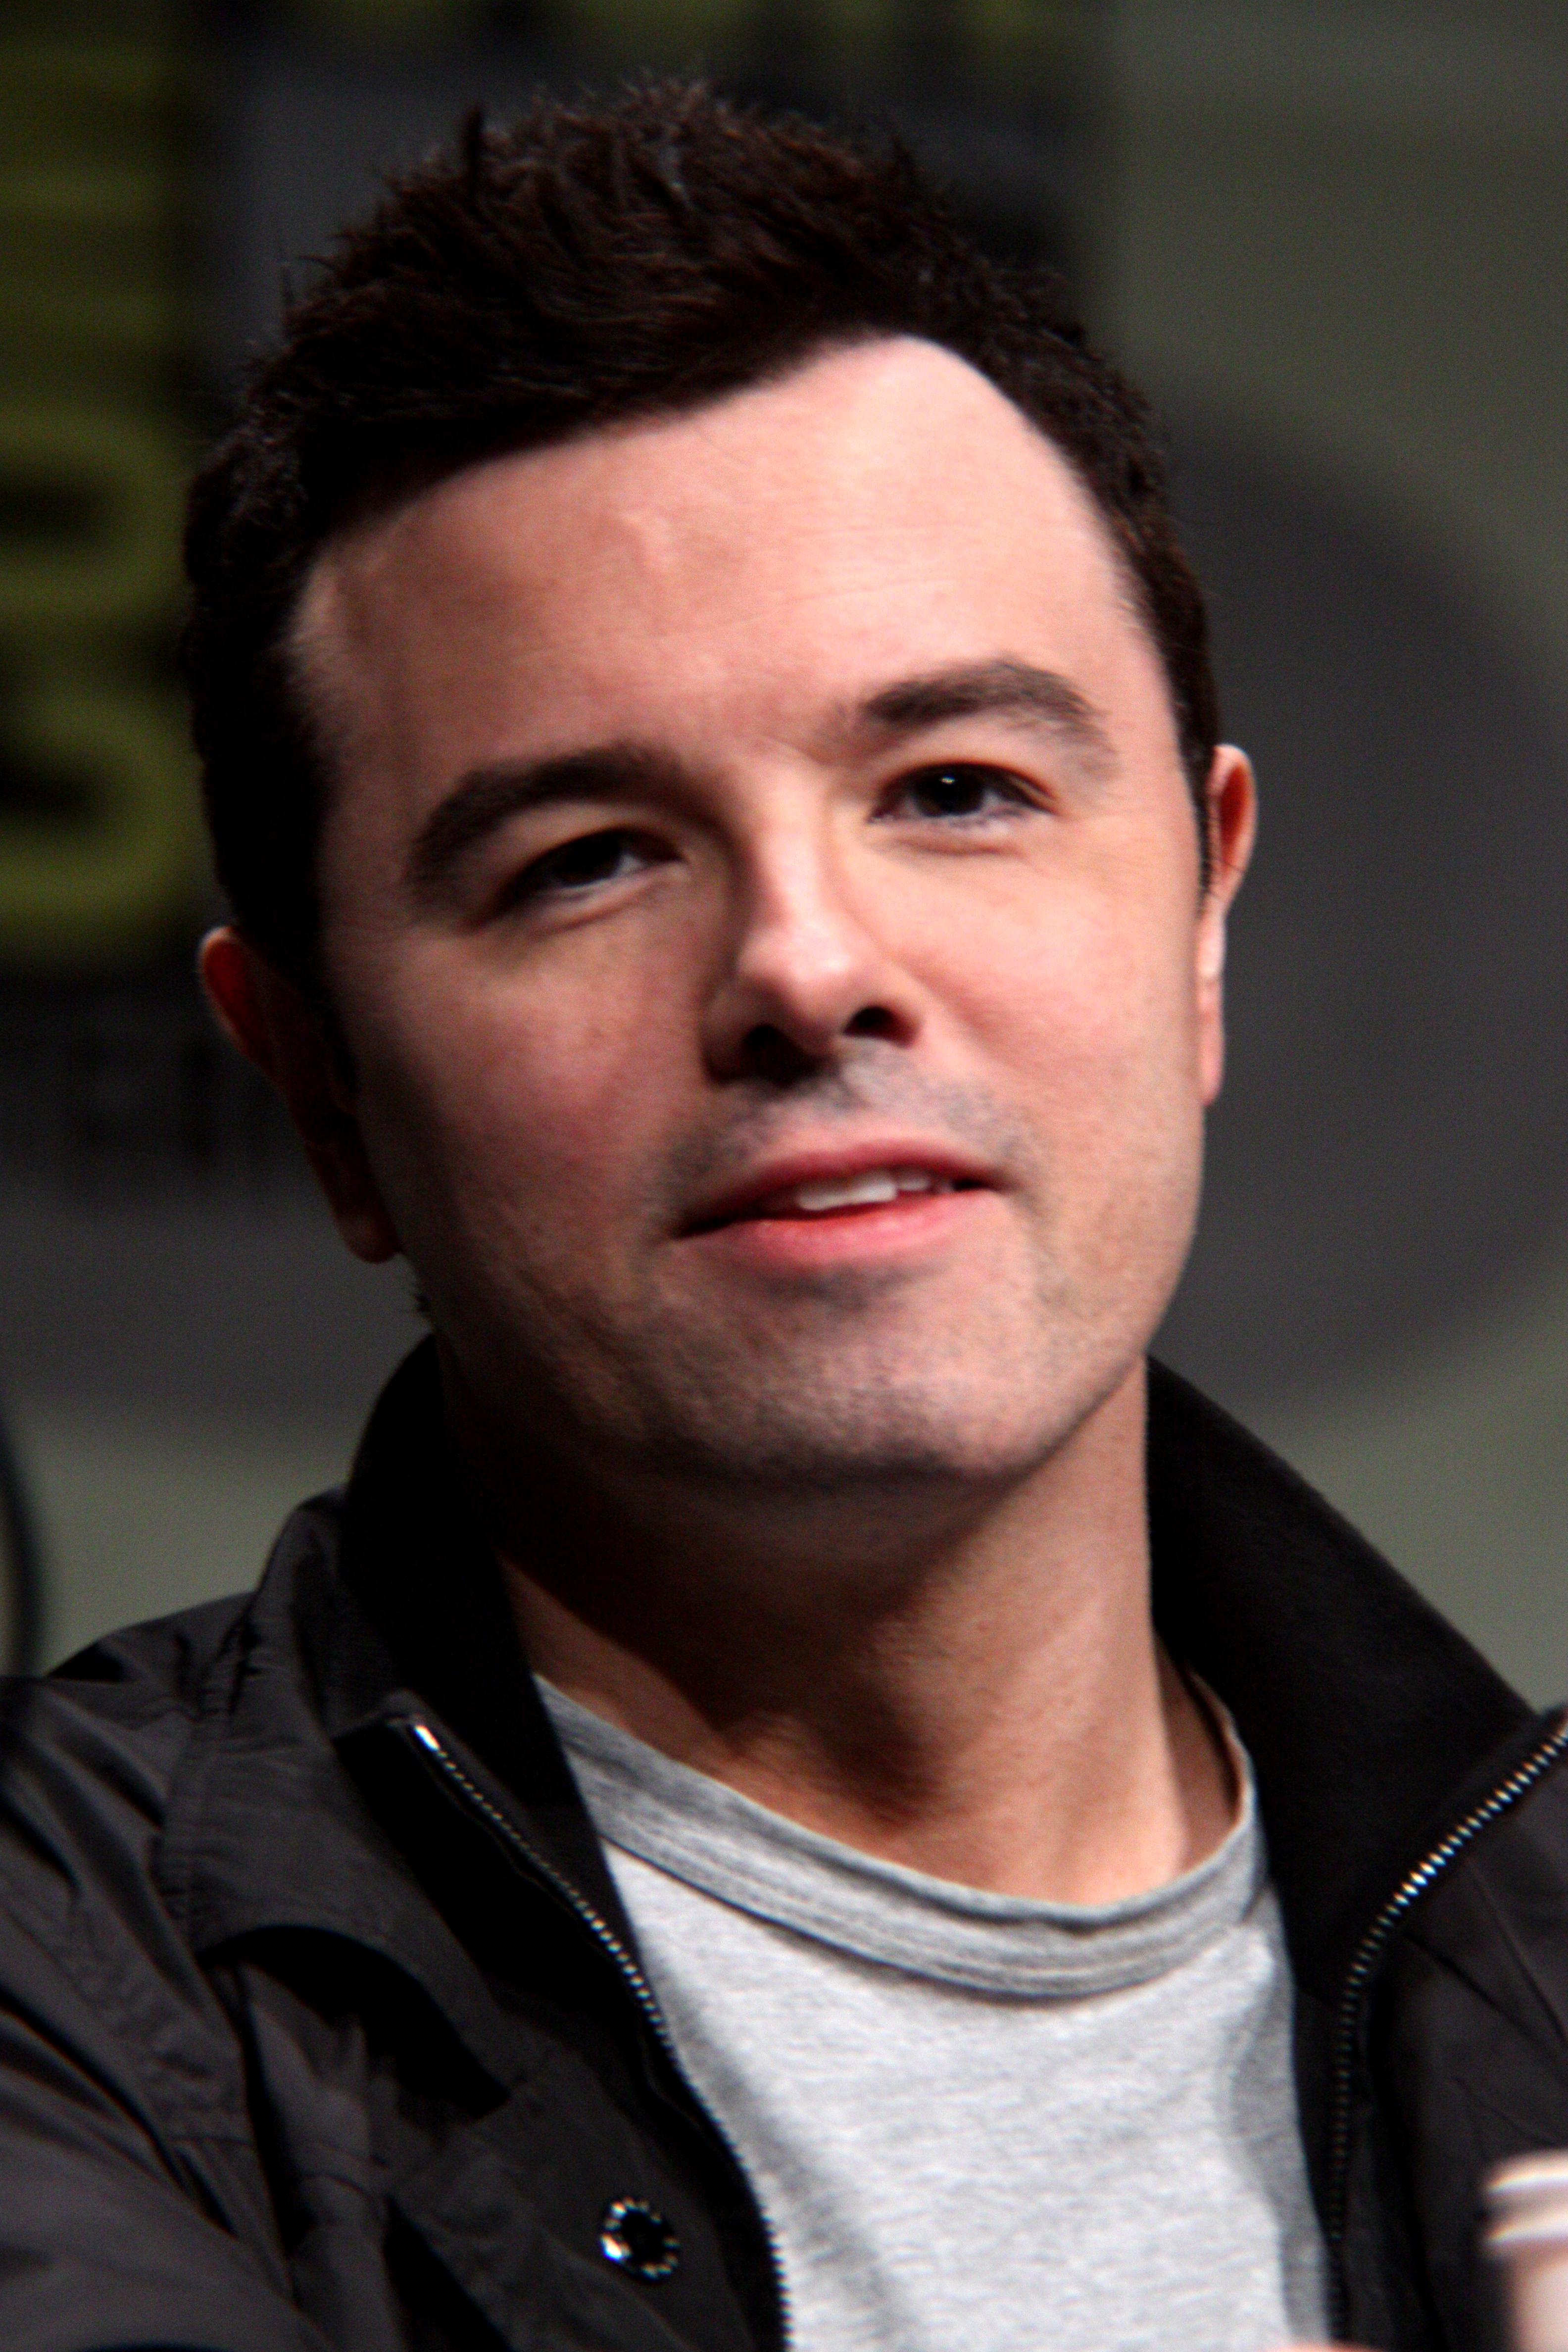 seth macfarlane фильмографияseth macfarlane my way, seth macfarlane my way скачать, seth macfarlane my way перевод, seth macfarlane sing, seth macfarlane twitter, seth macfarlane my way lyrics, seth macfarlane wife, seth macfarlane my way mp3, seth macfarlane песни, seth macfarlane voices, seth macfarlane слушать, seth macfarlane vk, seth macfarlane 2016, seth macfarlane stewie, seth macfarlane movies, seth macfarlane фильмография, seth macfarlane and charlize theron, seth macfarlane imdb, seth macfarlane mbti, seth macfarlane скачать